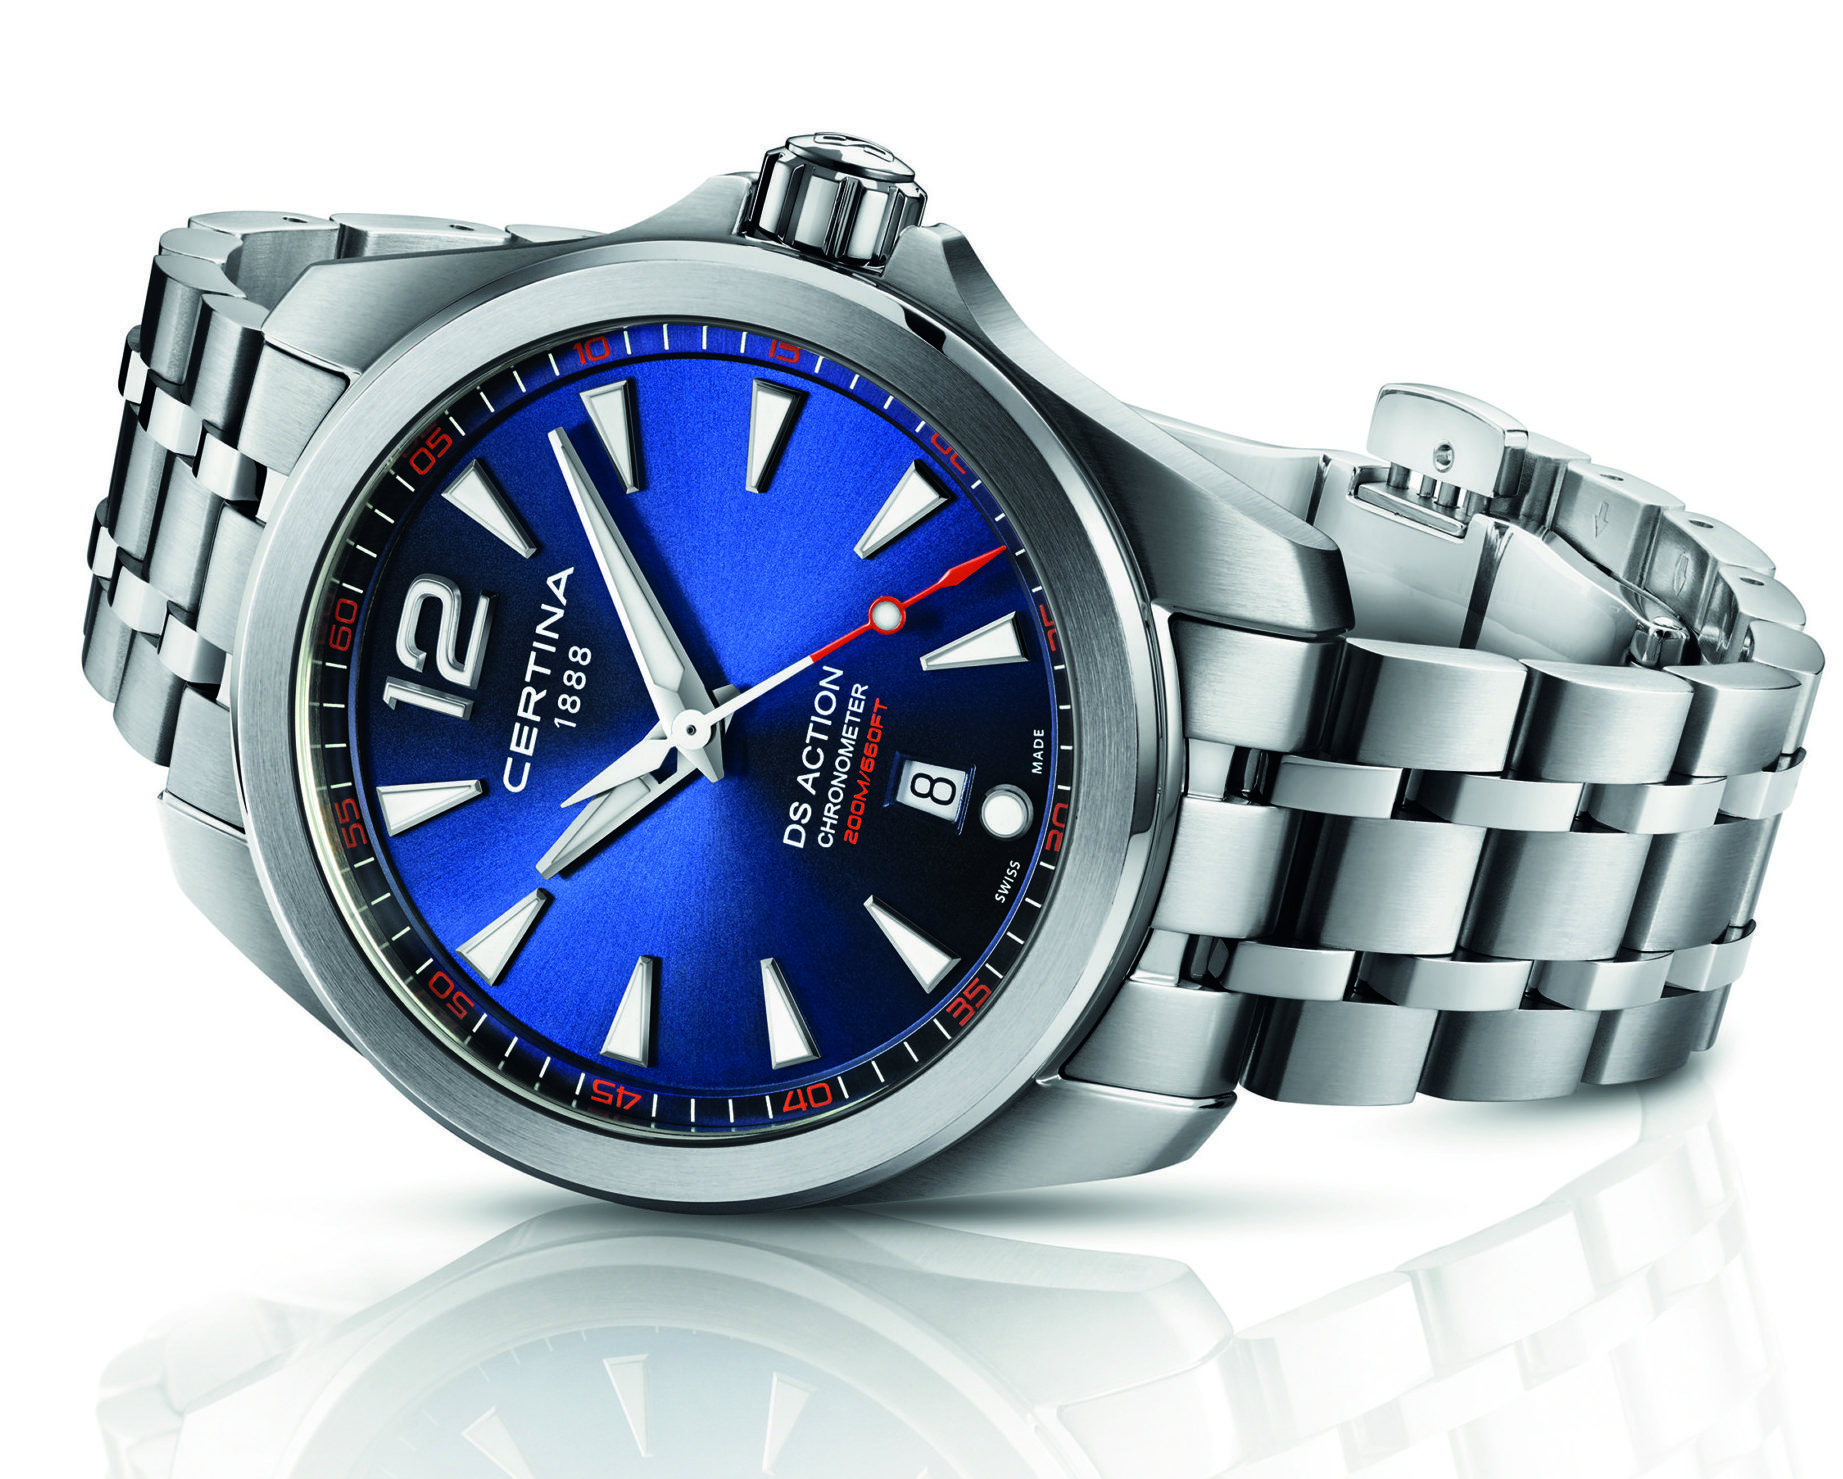 The Certina DS Action is a three hand quartz model with water resistance to 200m